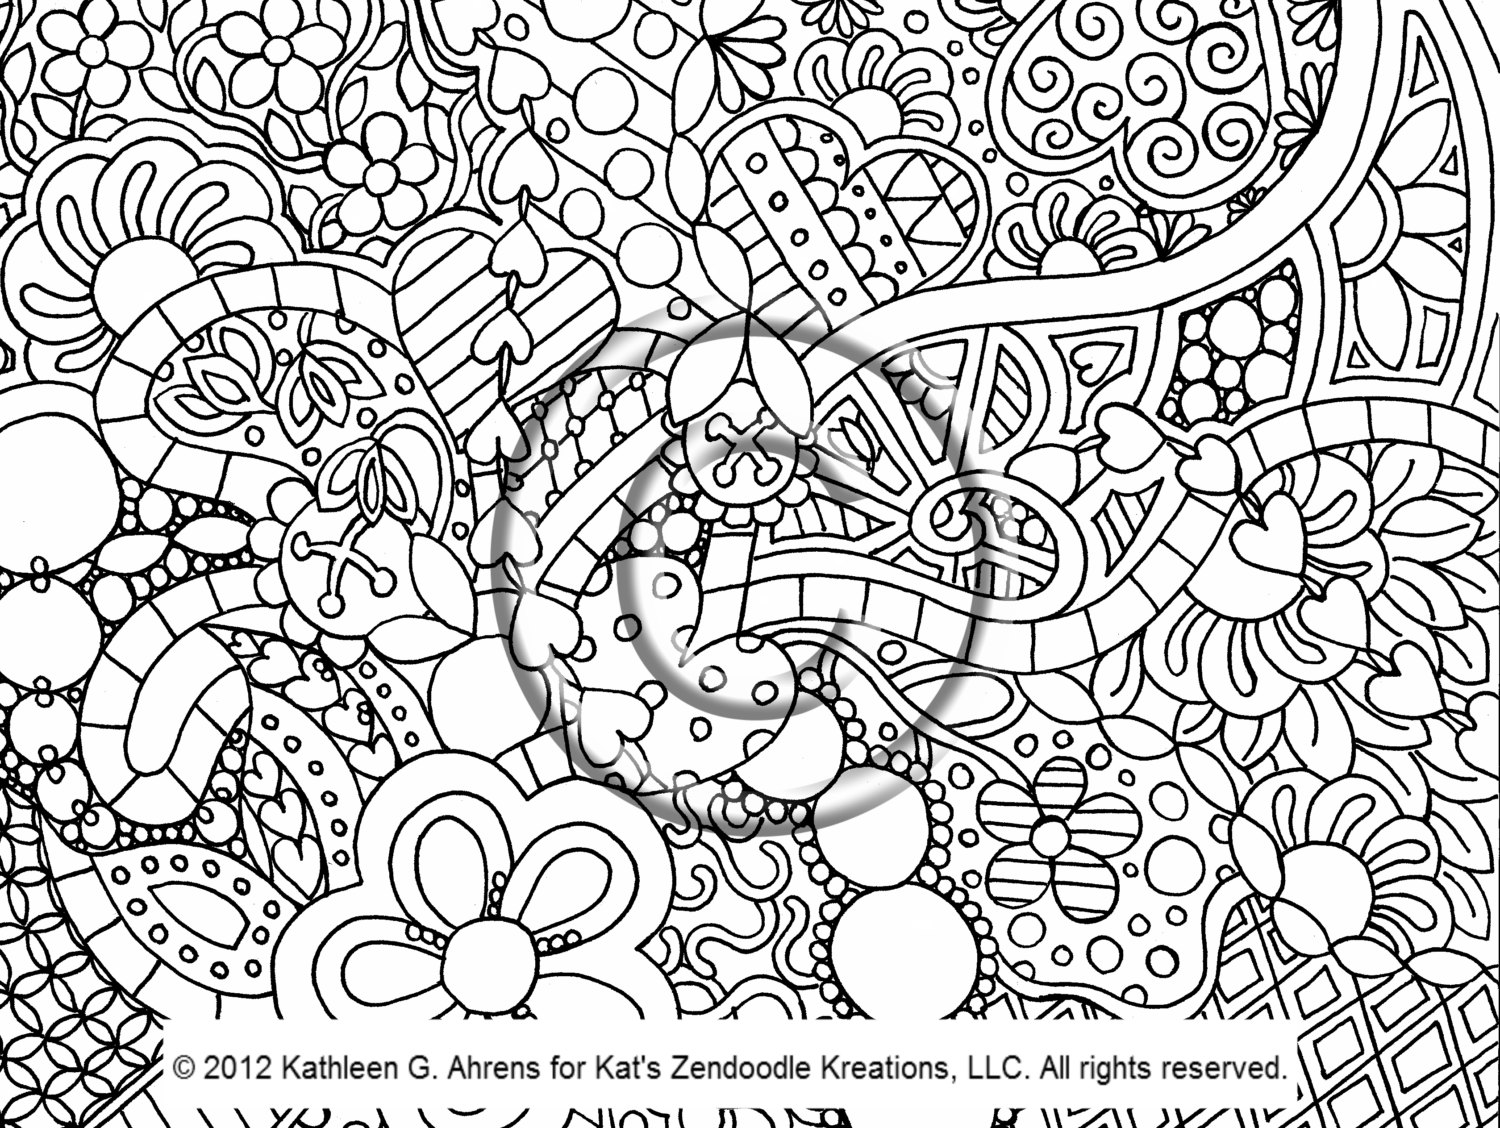 6 Best Images of Printable Psychedelic Coloring Pages ...